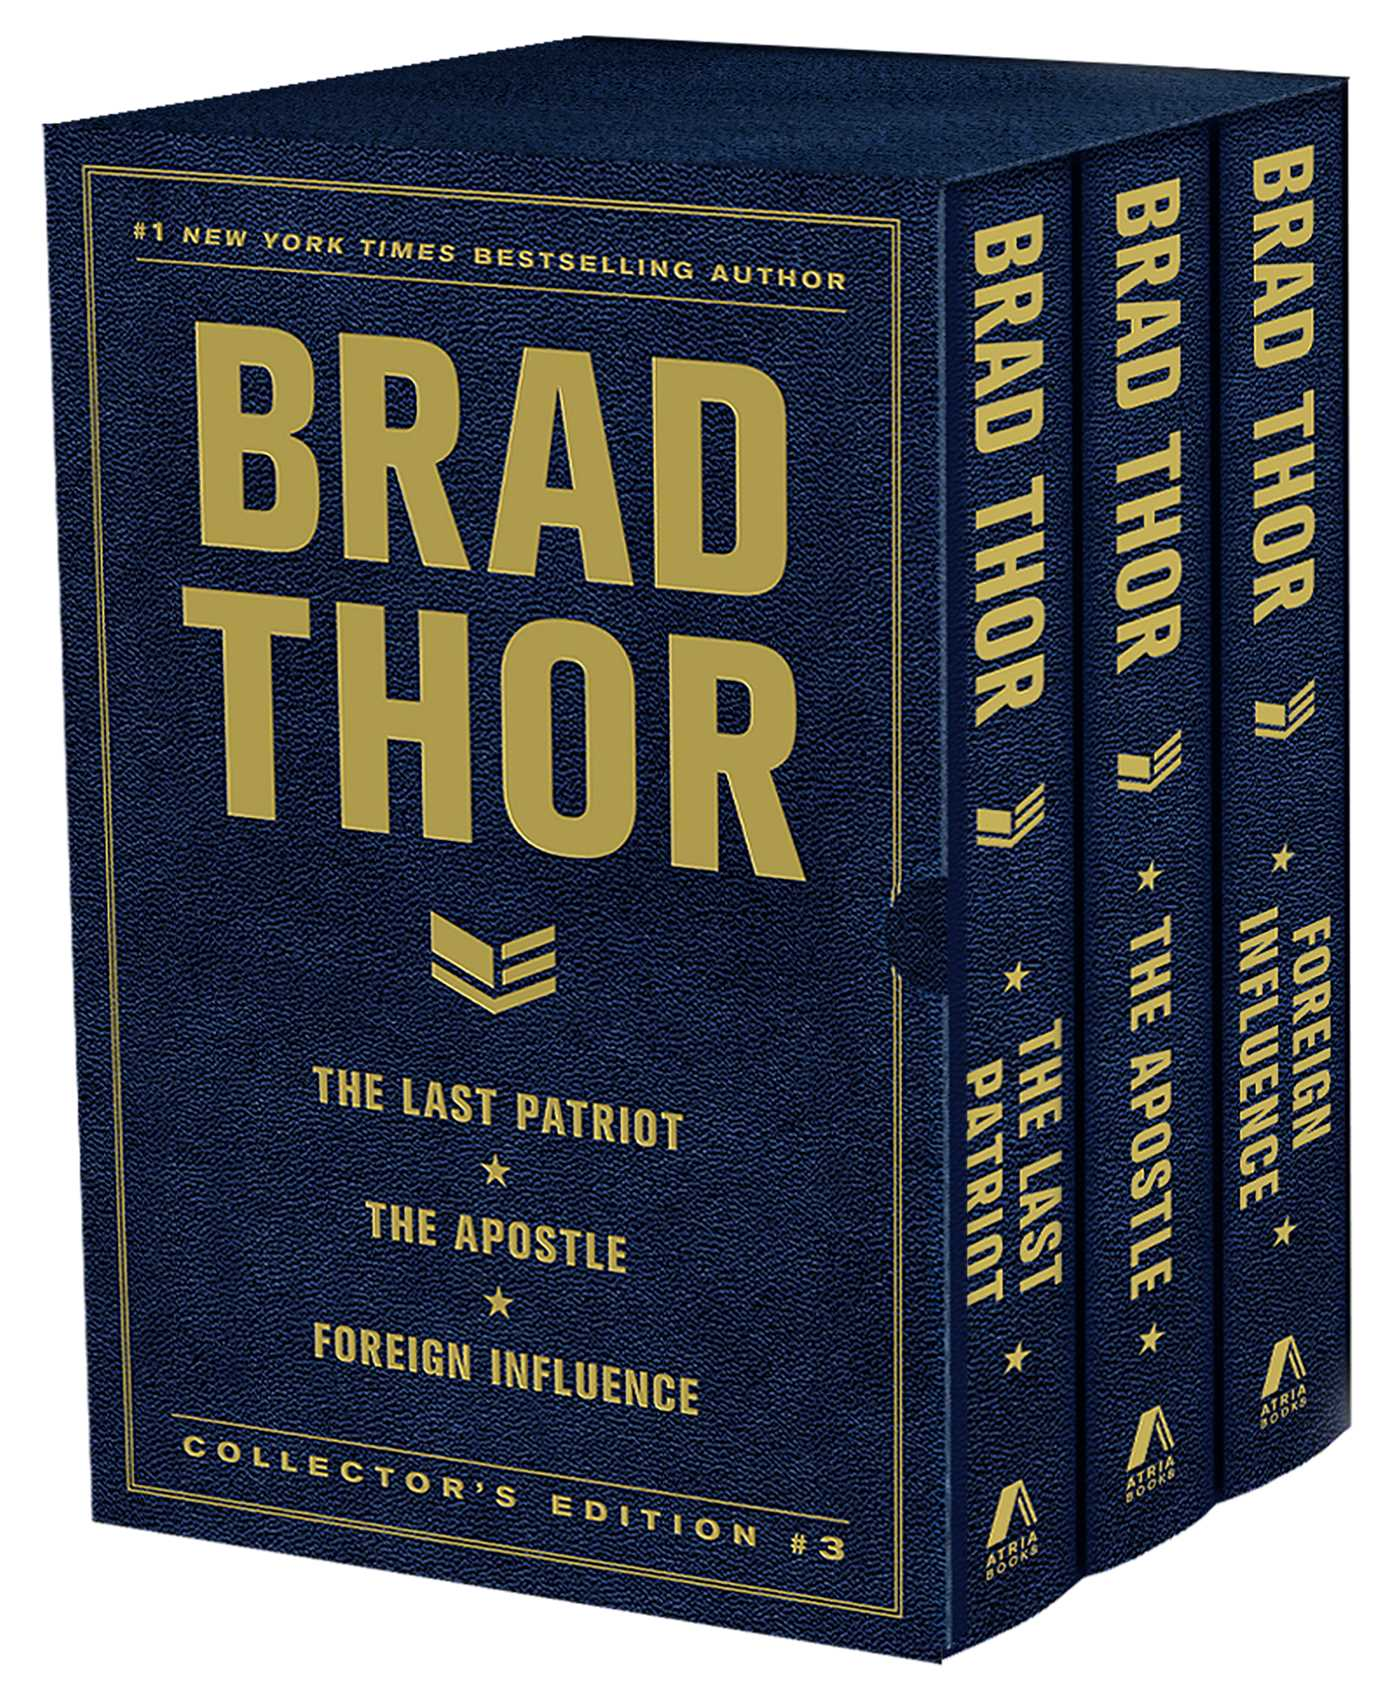 Brad-thor-collectors-edition-3-9781476773643_hr